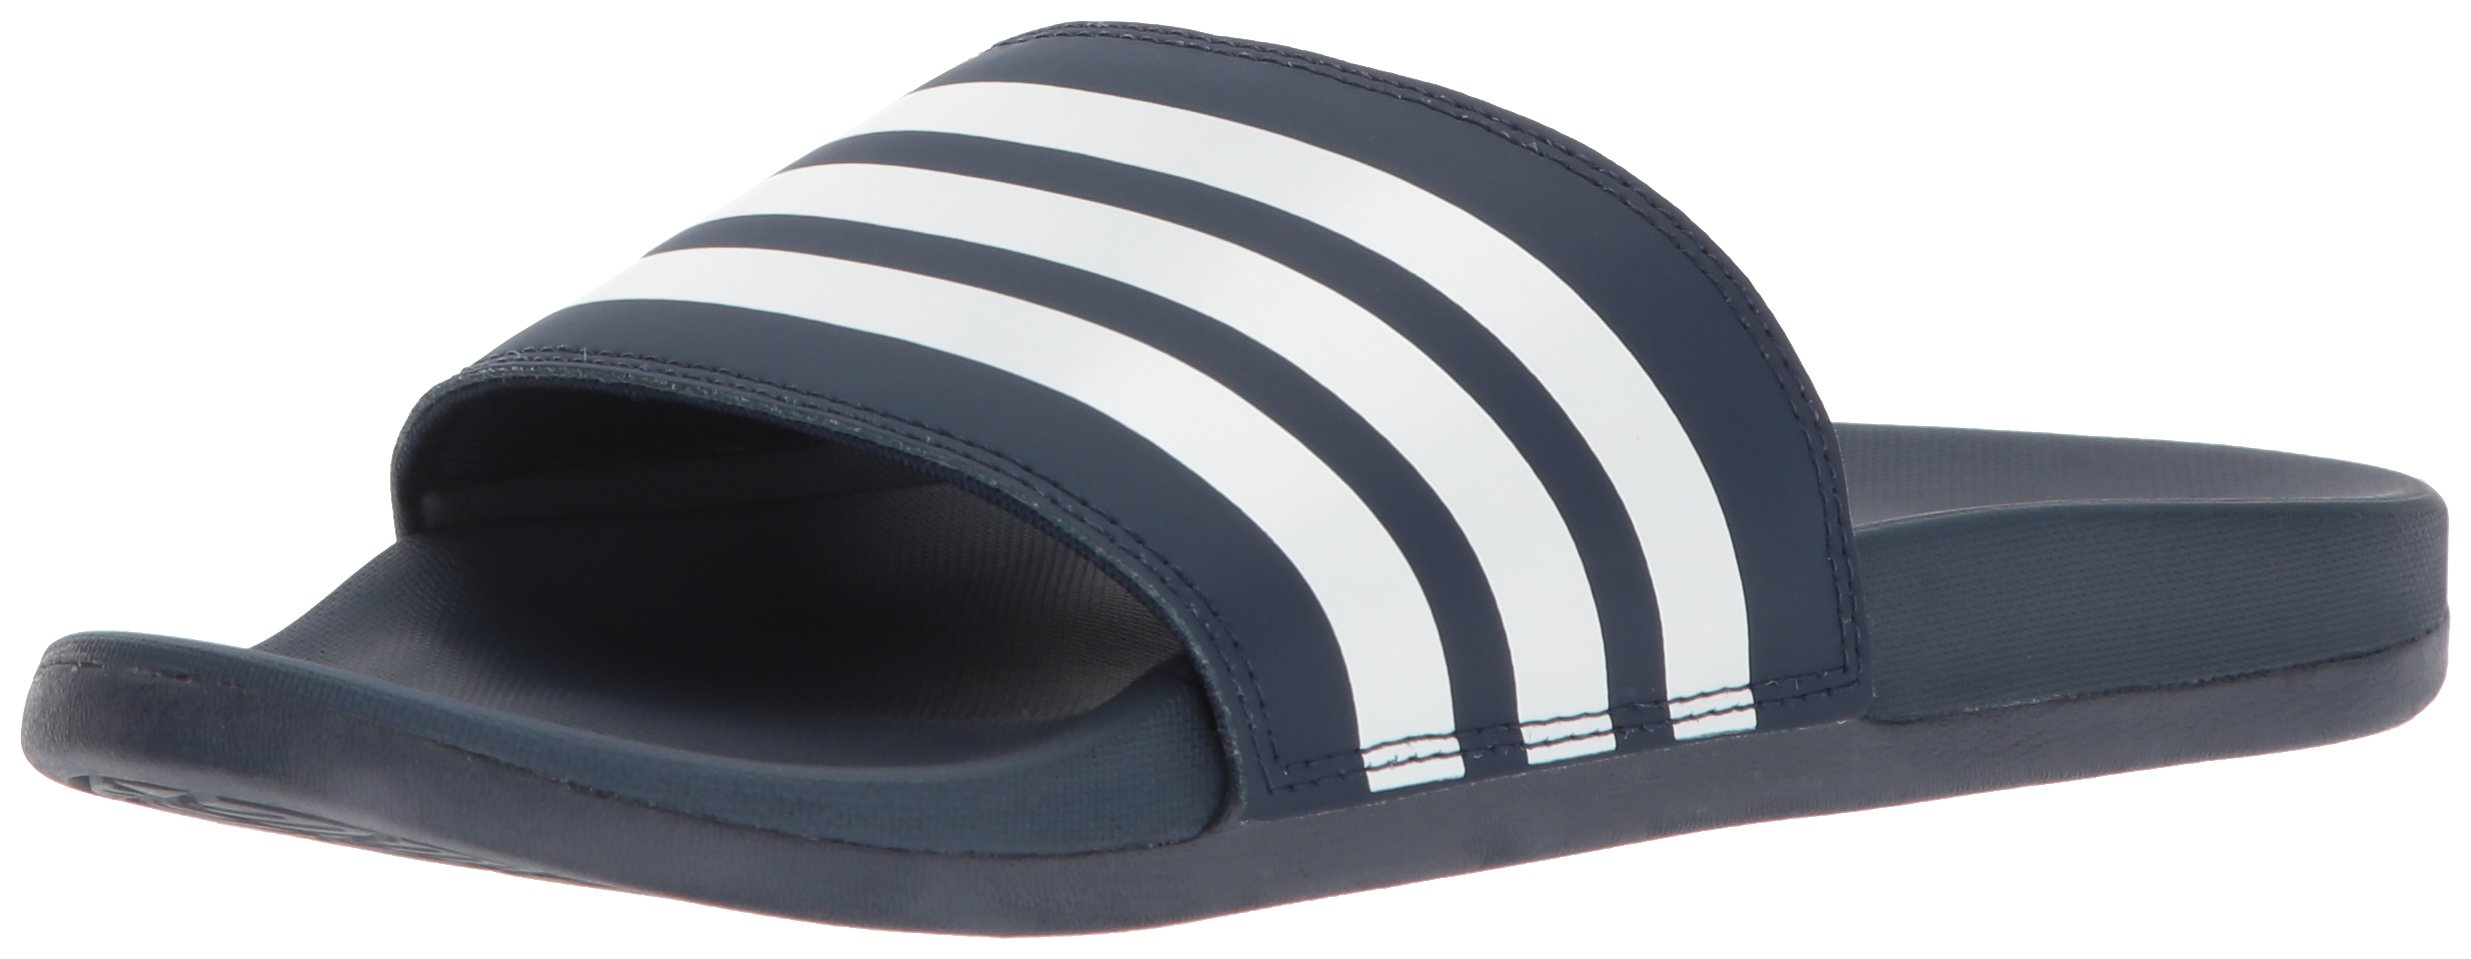 adidas Women's Adilette CF+ Stripes W Famous Slide Sandal, Collegiate Navy/White/Collegiate Navy, 9 M US